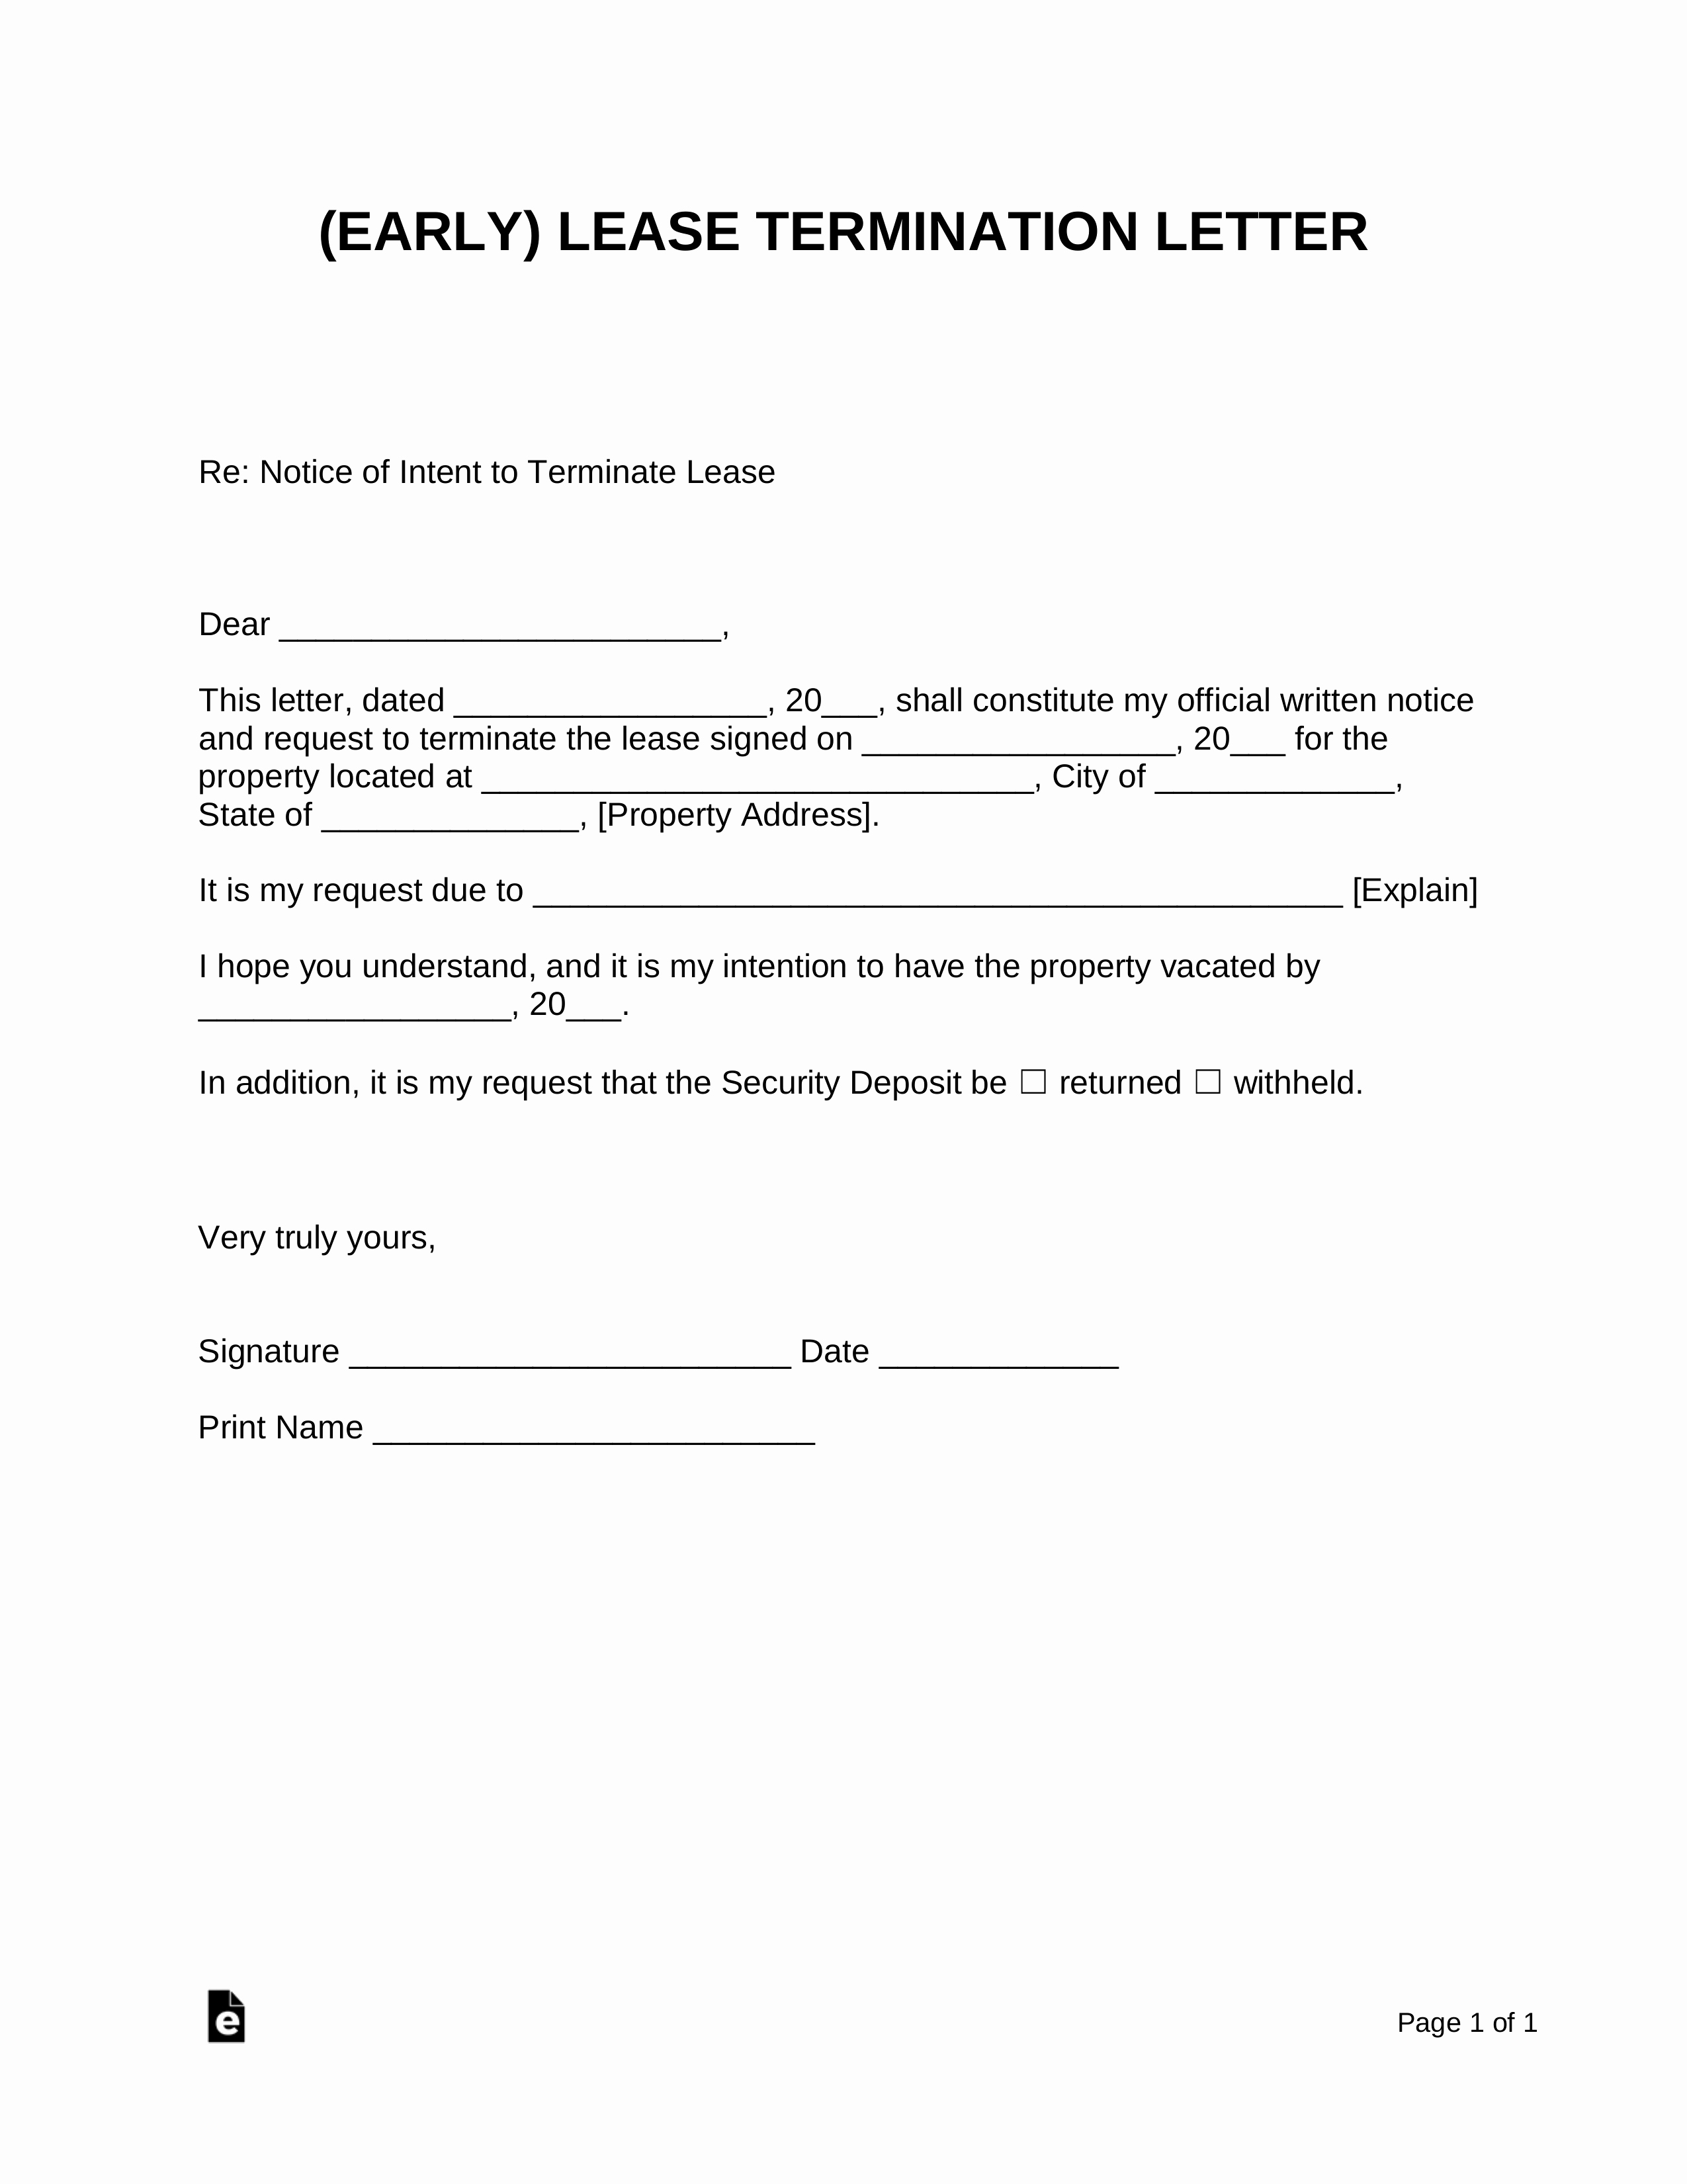 Rent Free Letter Template Unique Early Lease Termination Letter Landlord Tenant